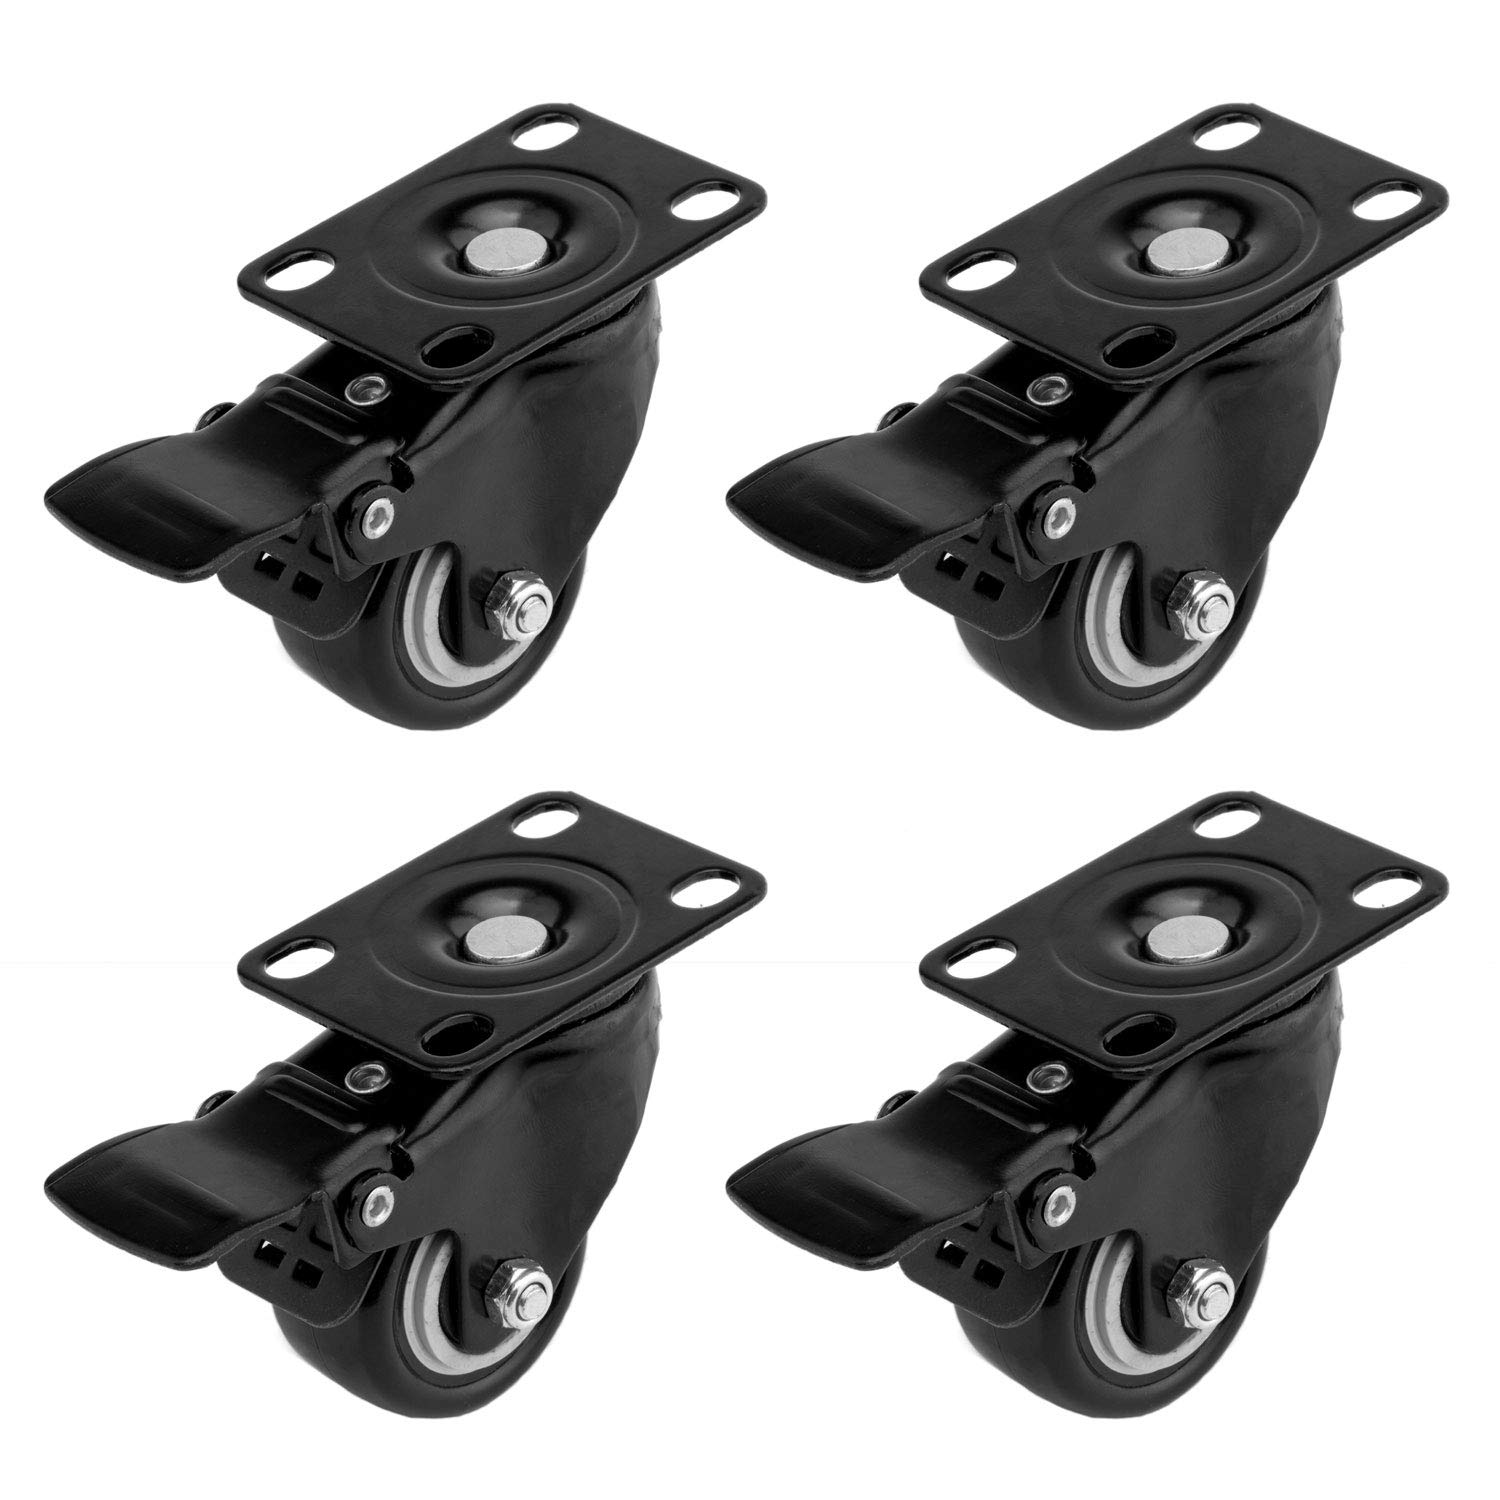 ULIFESTAR Swivel Caster Wheels with 360 Degree Top Plate,Heavy Duty Polyurethane PU Rubber Dual Locking Steering Caster Wheels with Brakes for Industrial Trailer/Home Furniture Replacement (2'')